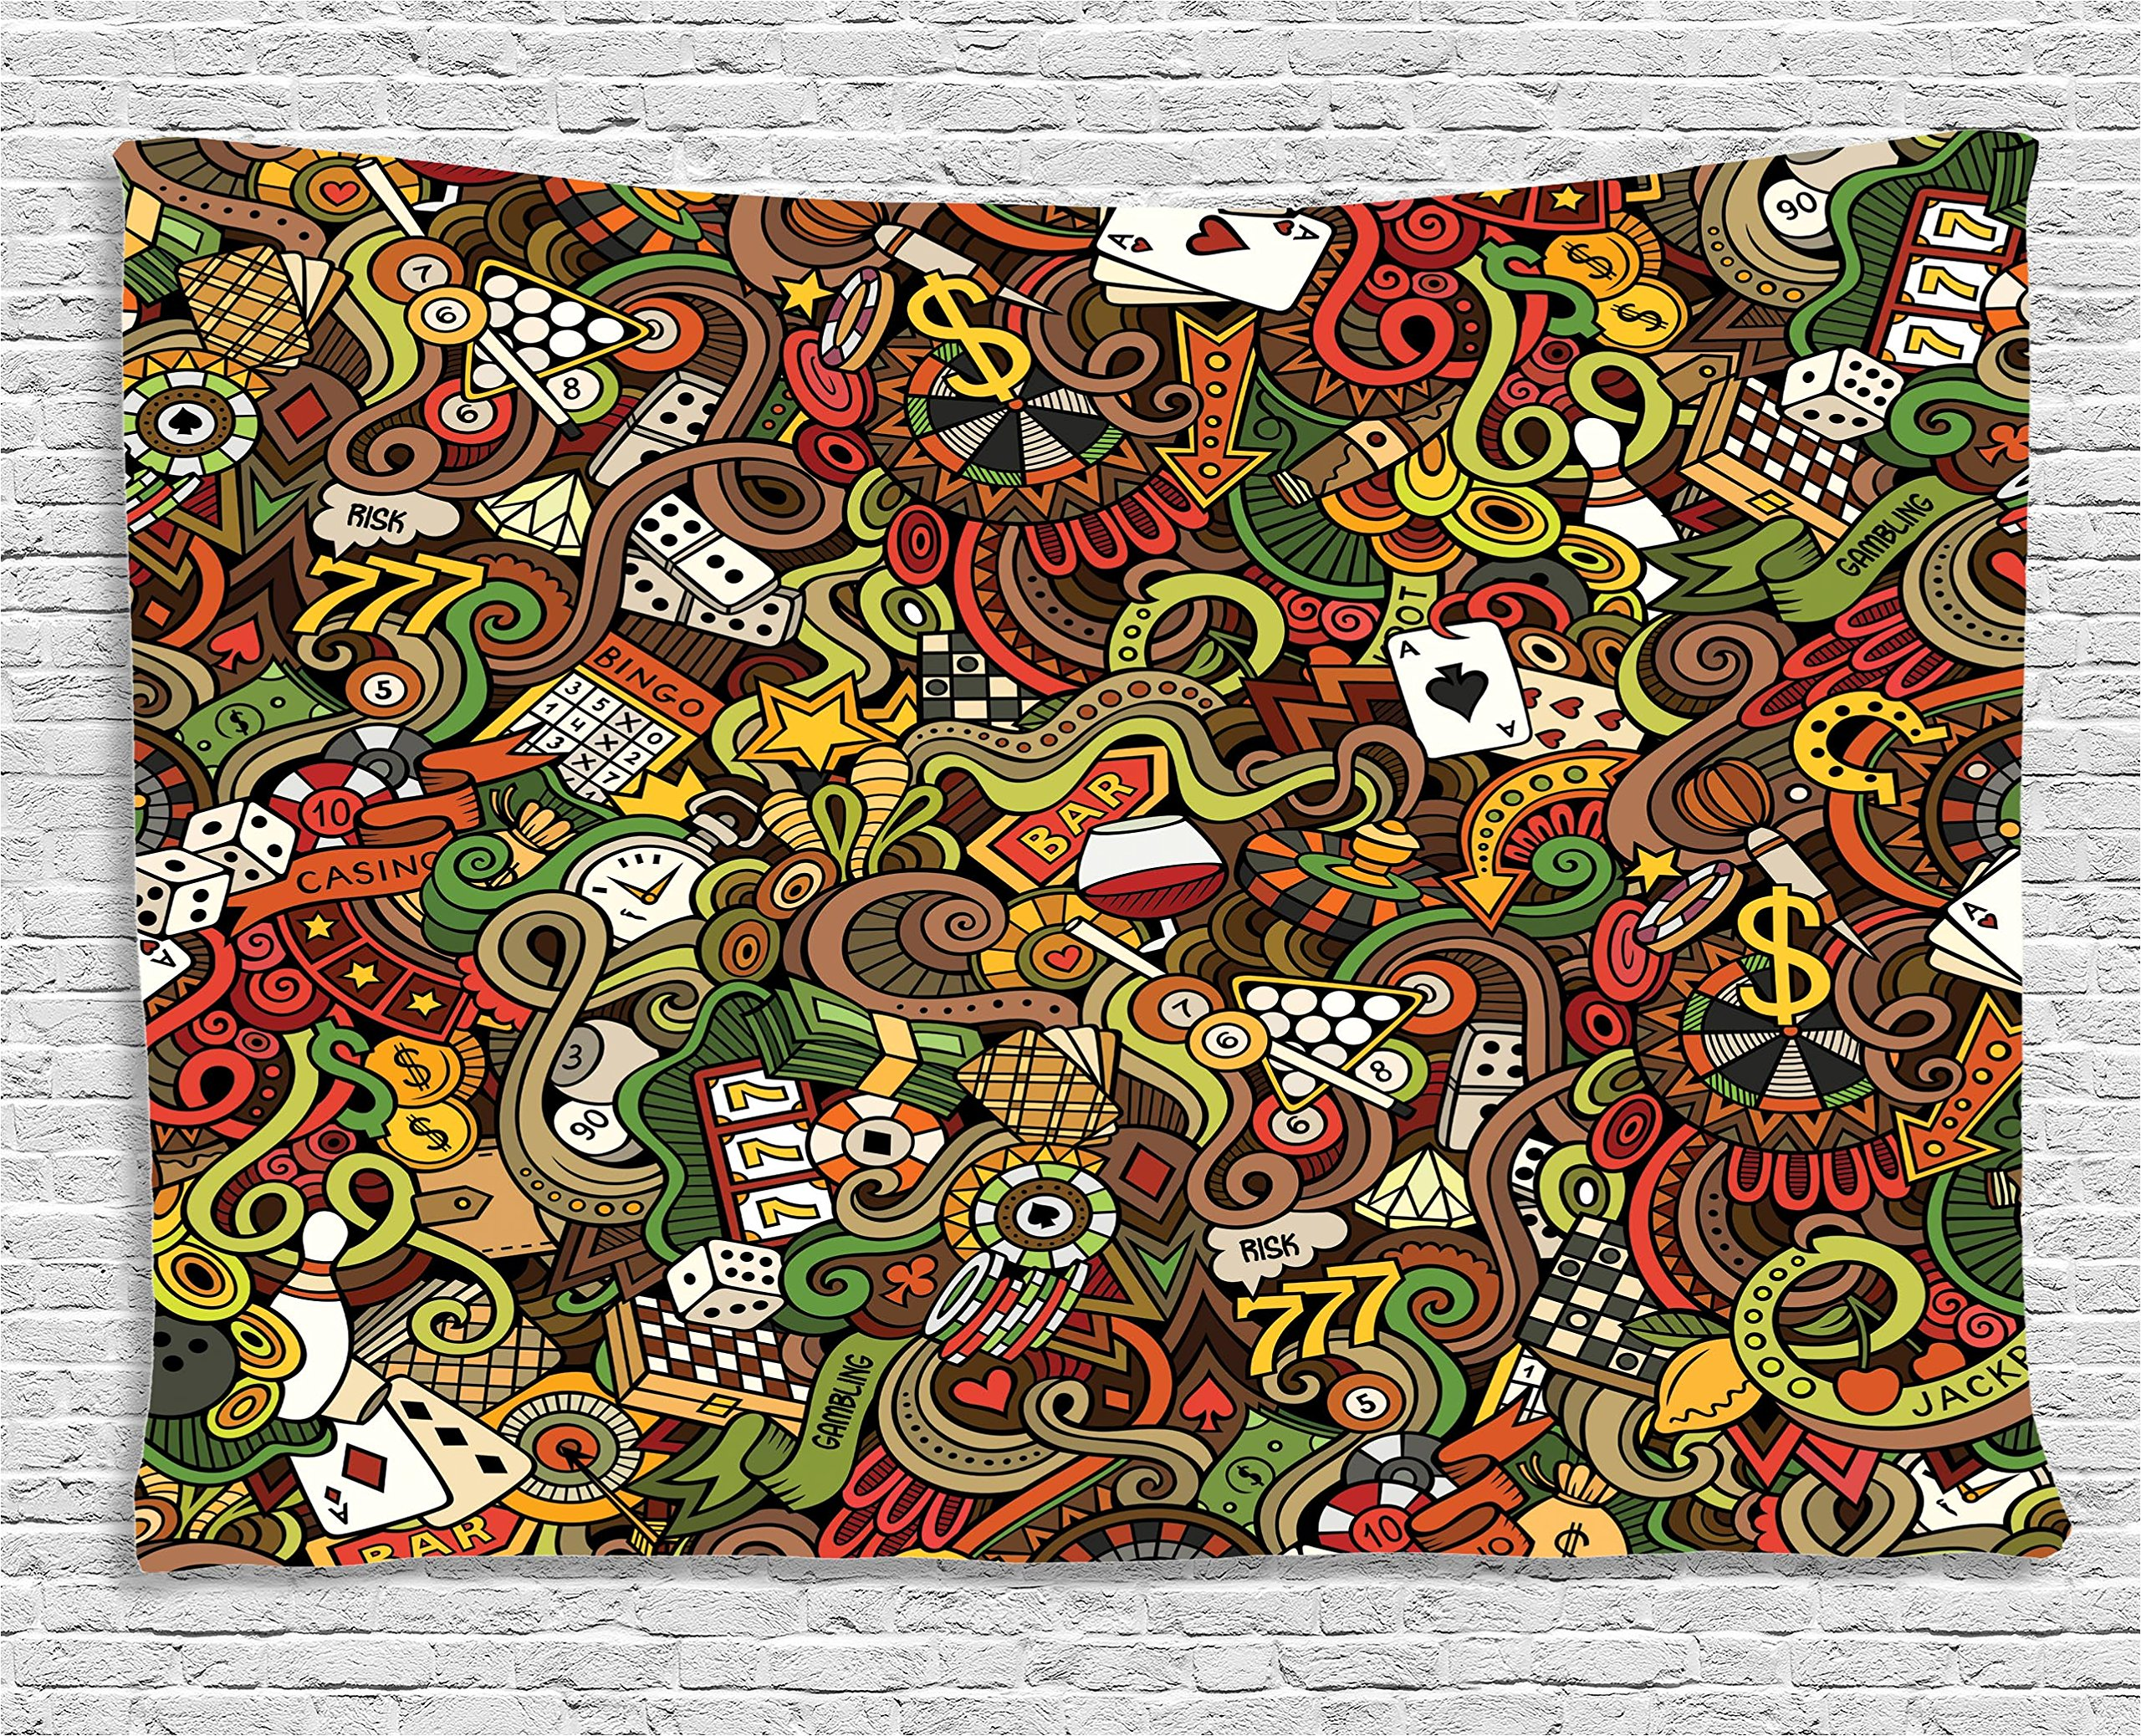 Ambesonne Casino Decorations Tapestry, Doodles Style Art Bingo Excitement Checkers King Tambourine Vegas, Wall Hanging for Bedroom Living Room Dorm, 60 W X 40 L inches